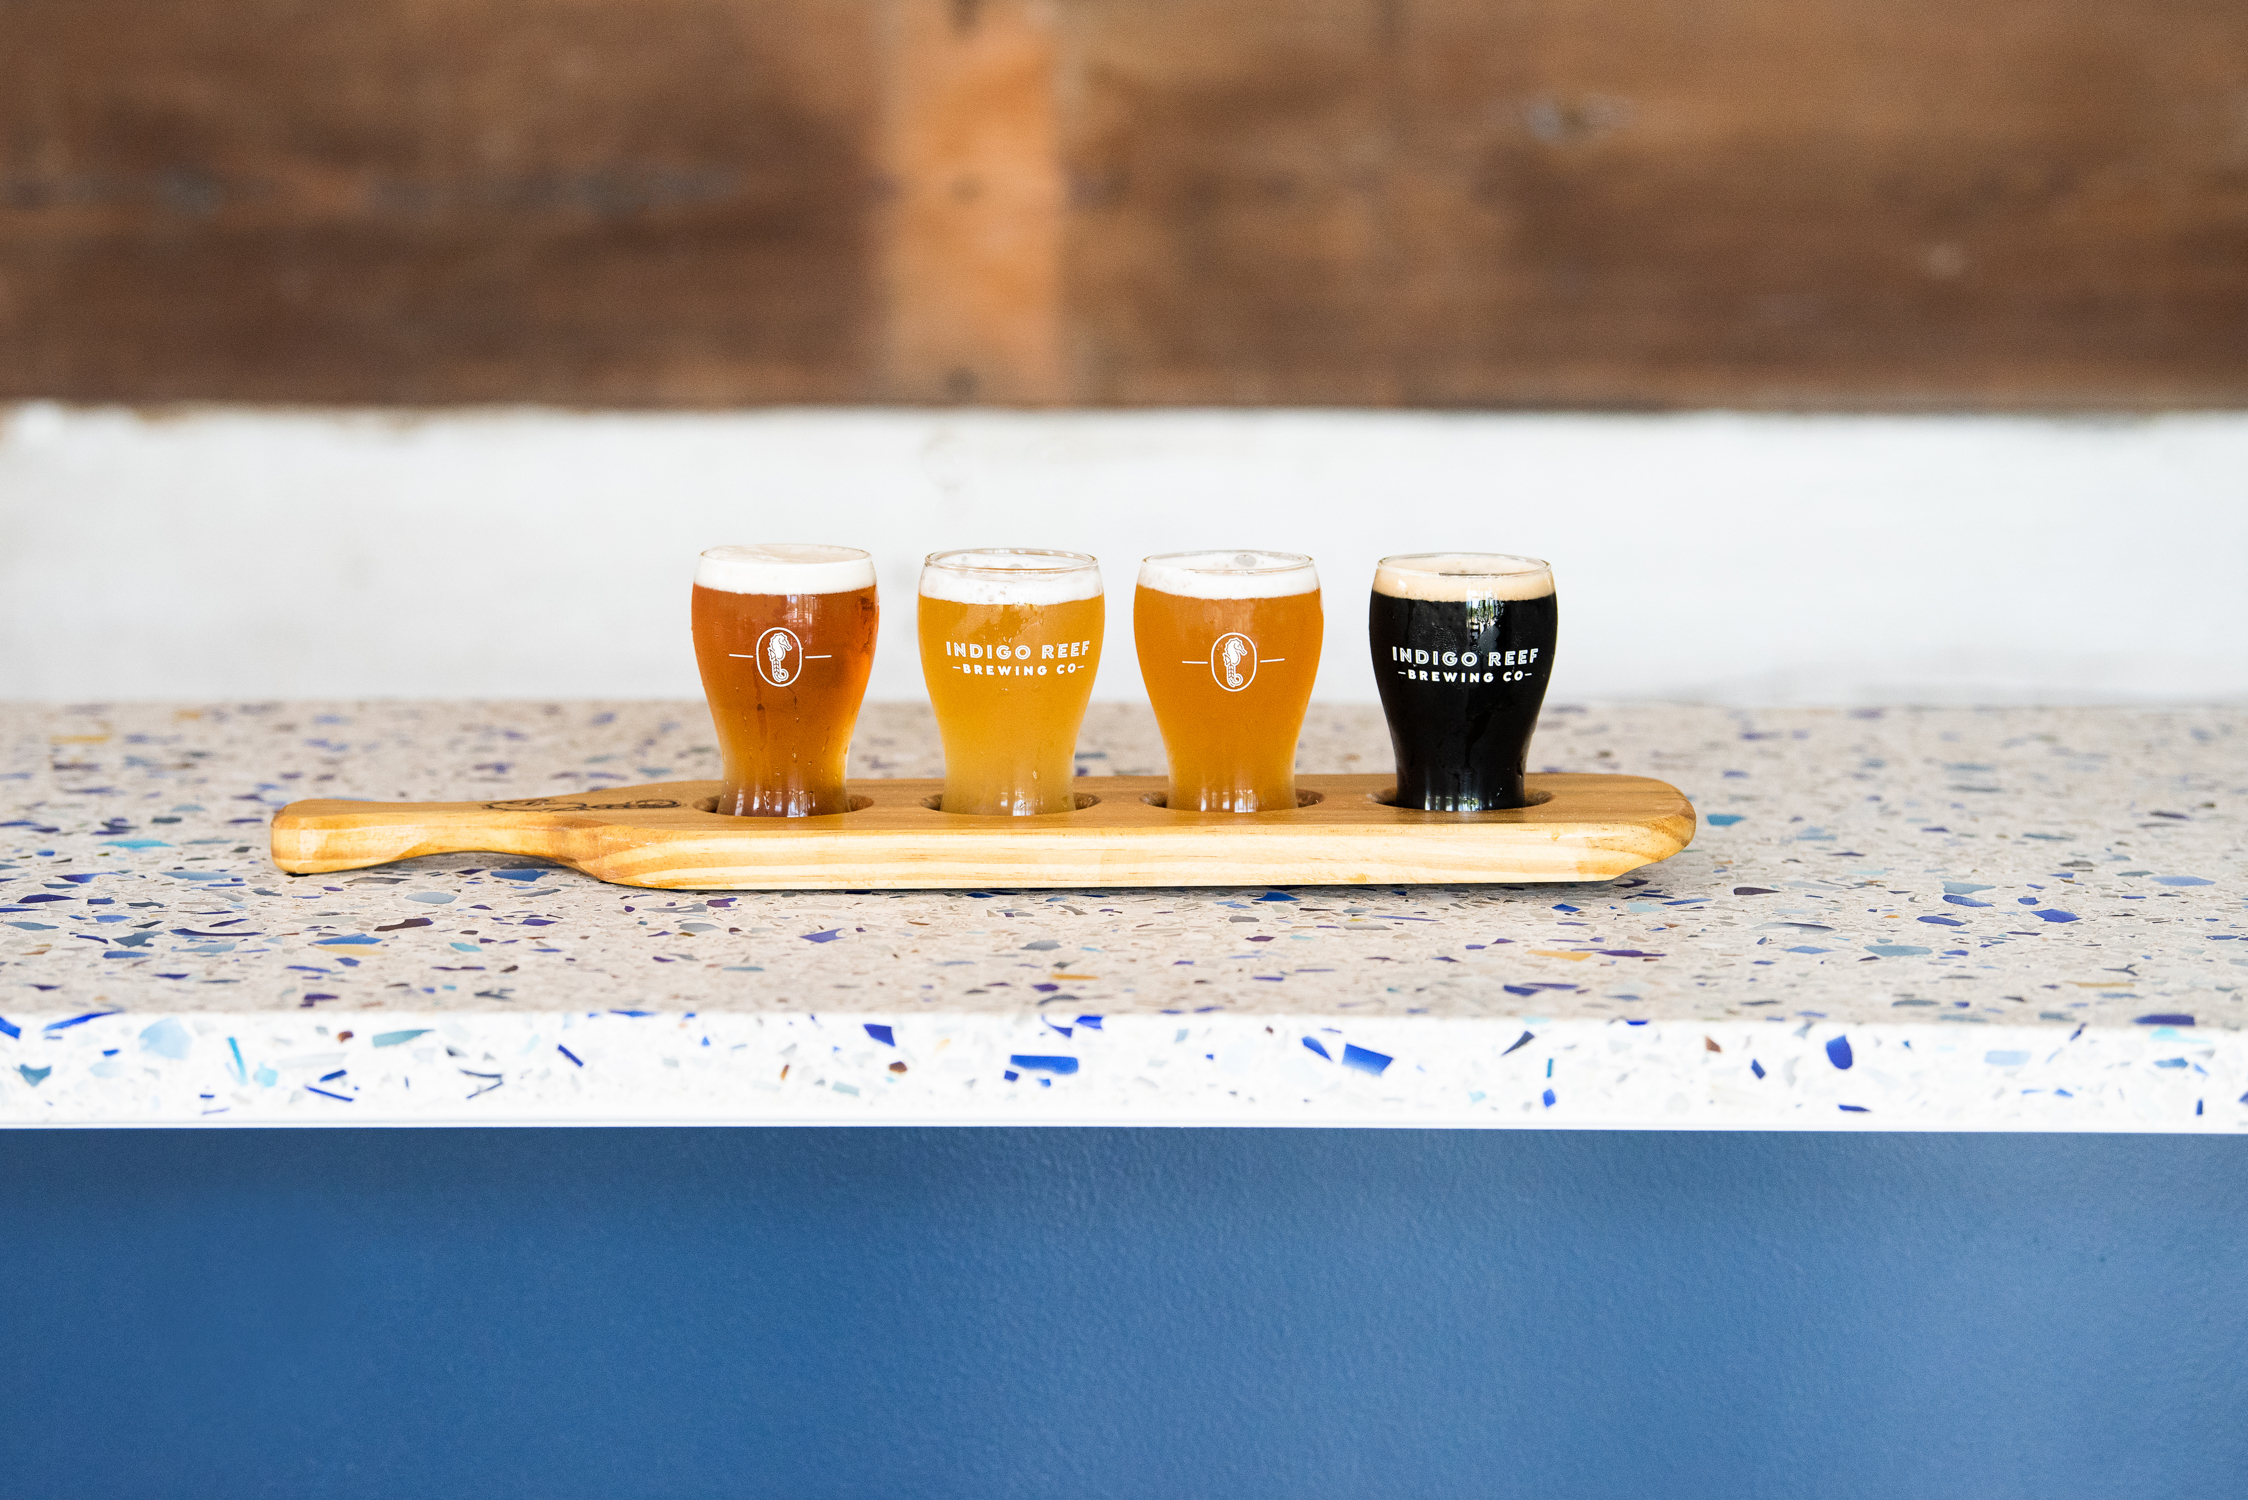 Charleston Branding Photography for Indigo Reef Brewing Company by Reese Moore Photography